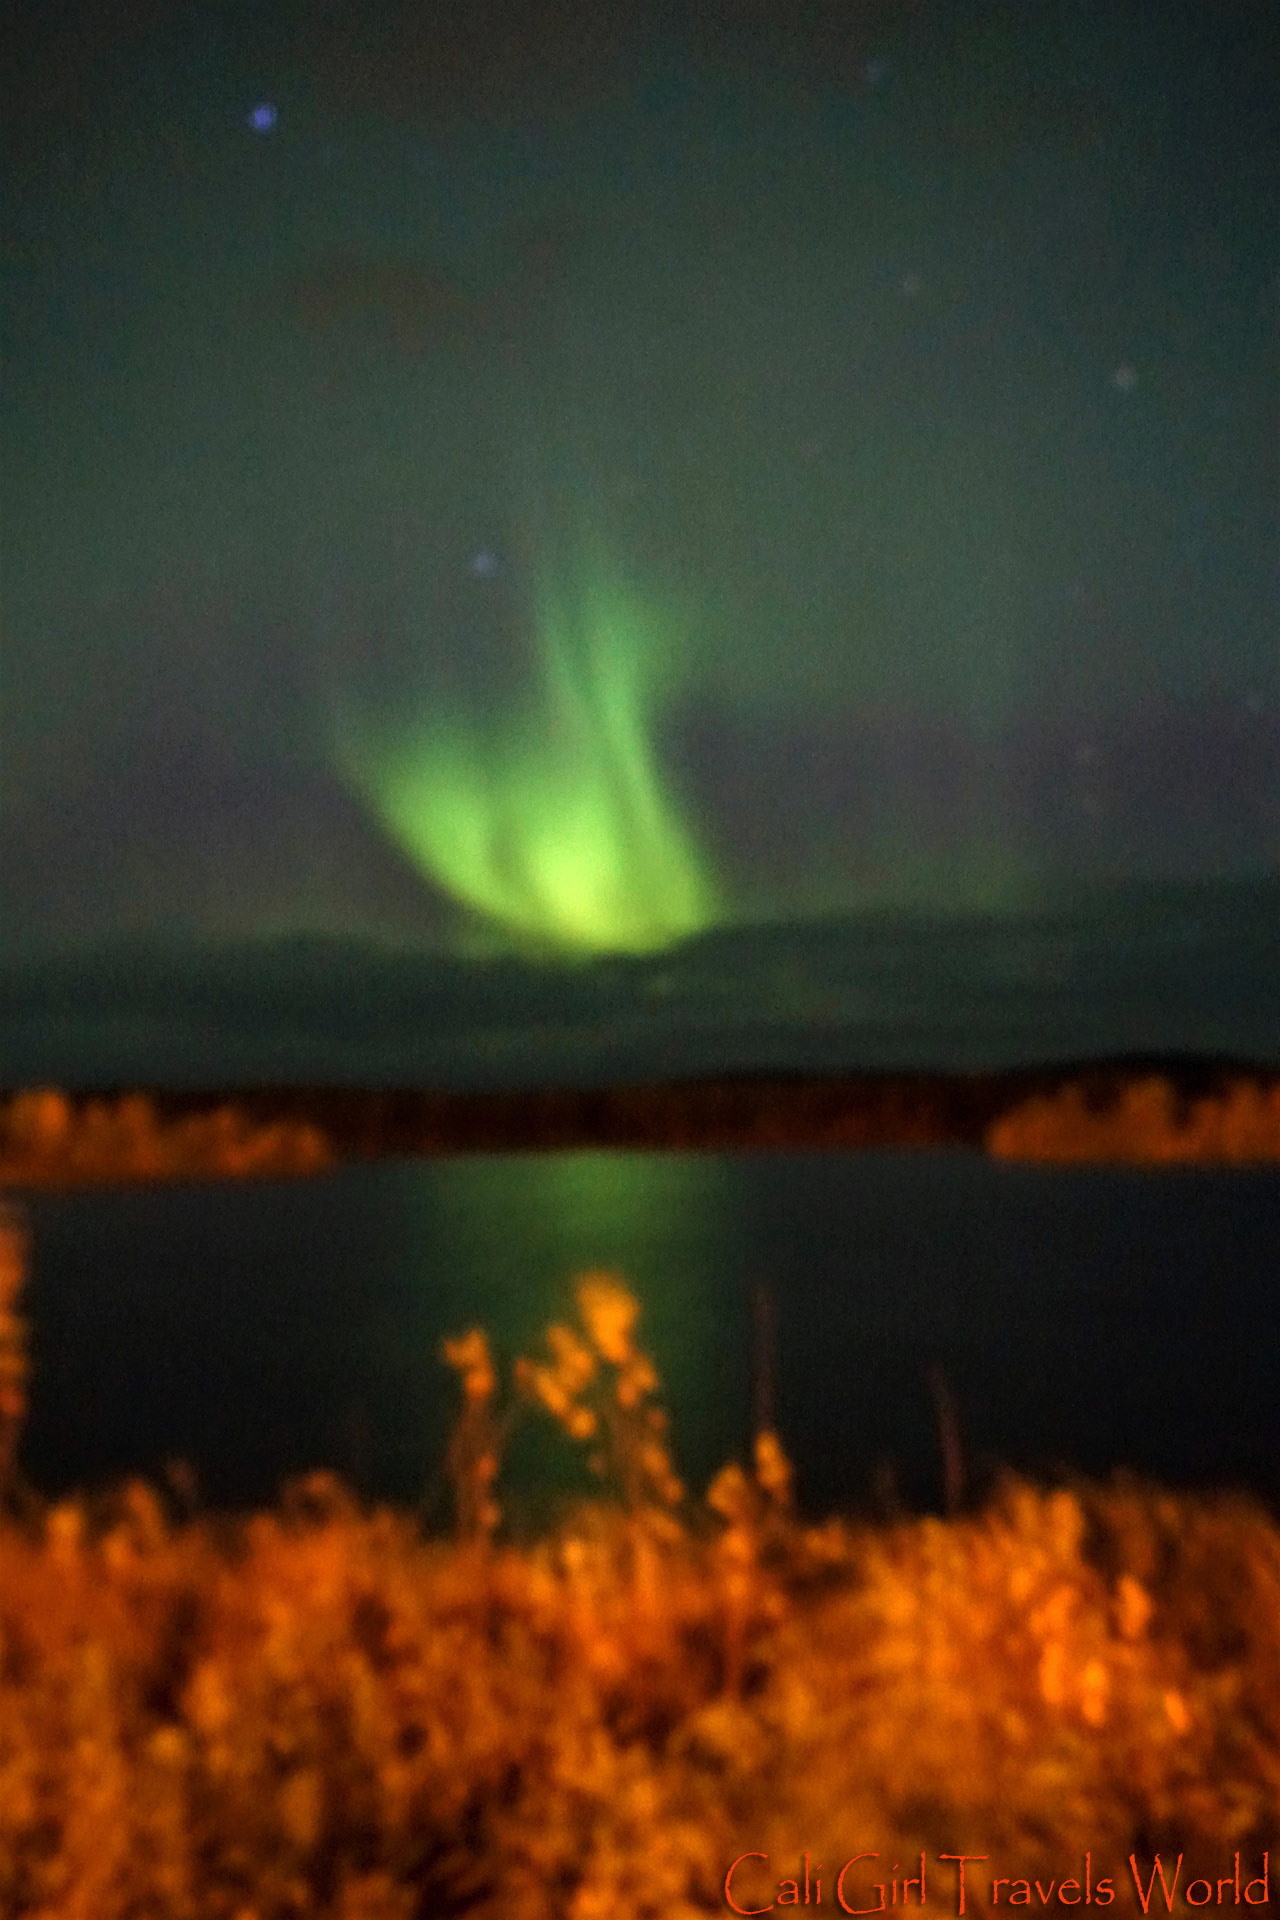 The first time I saw the northern lights in Lapland, Finland